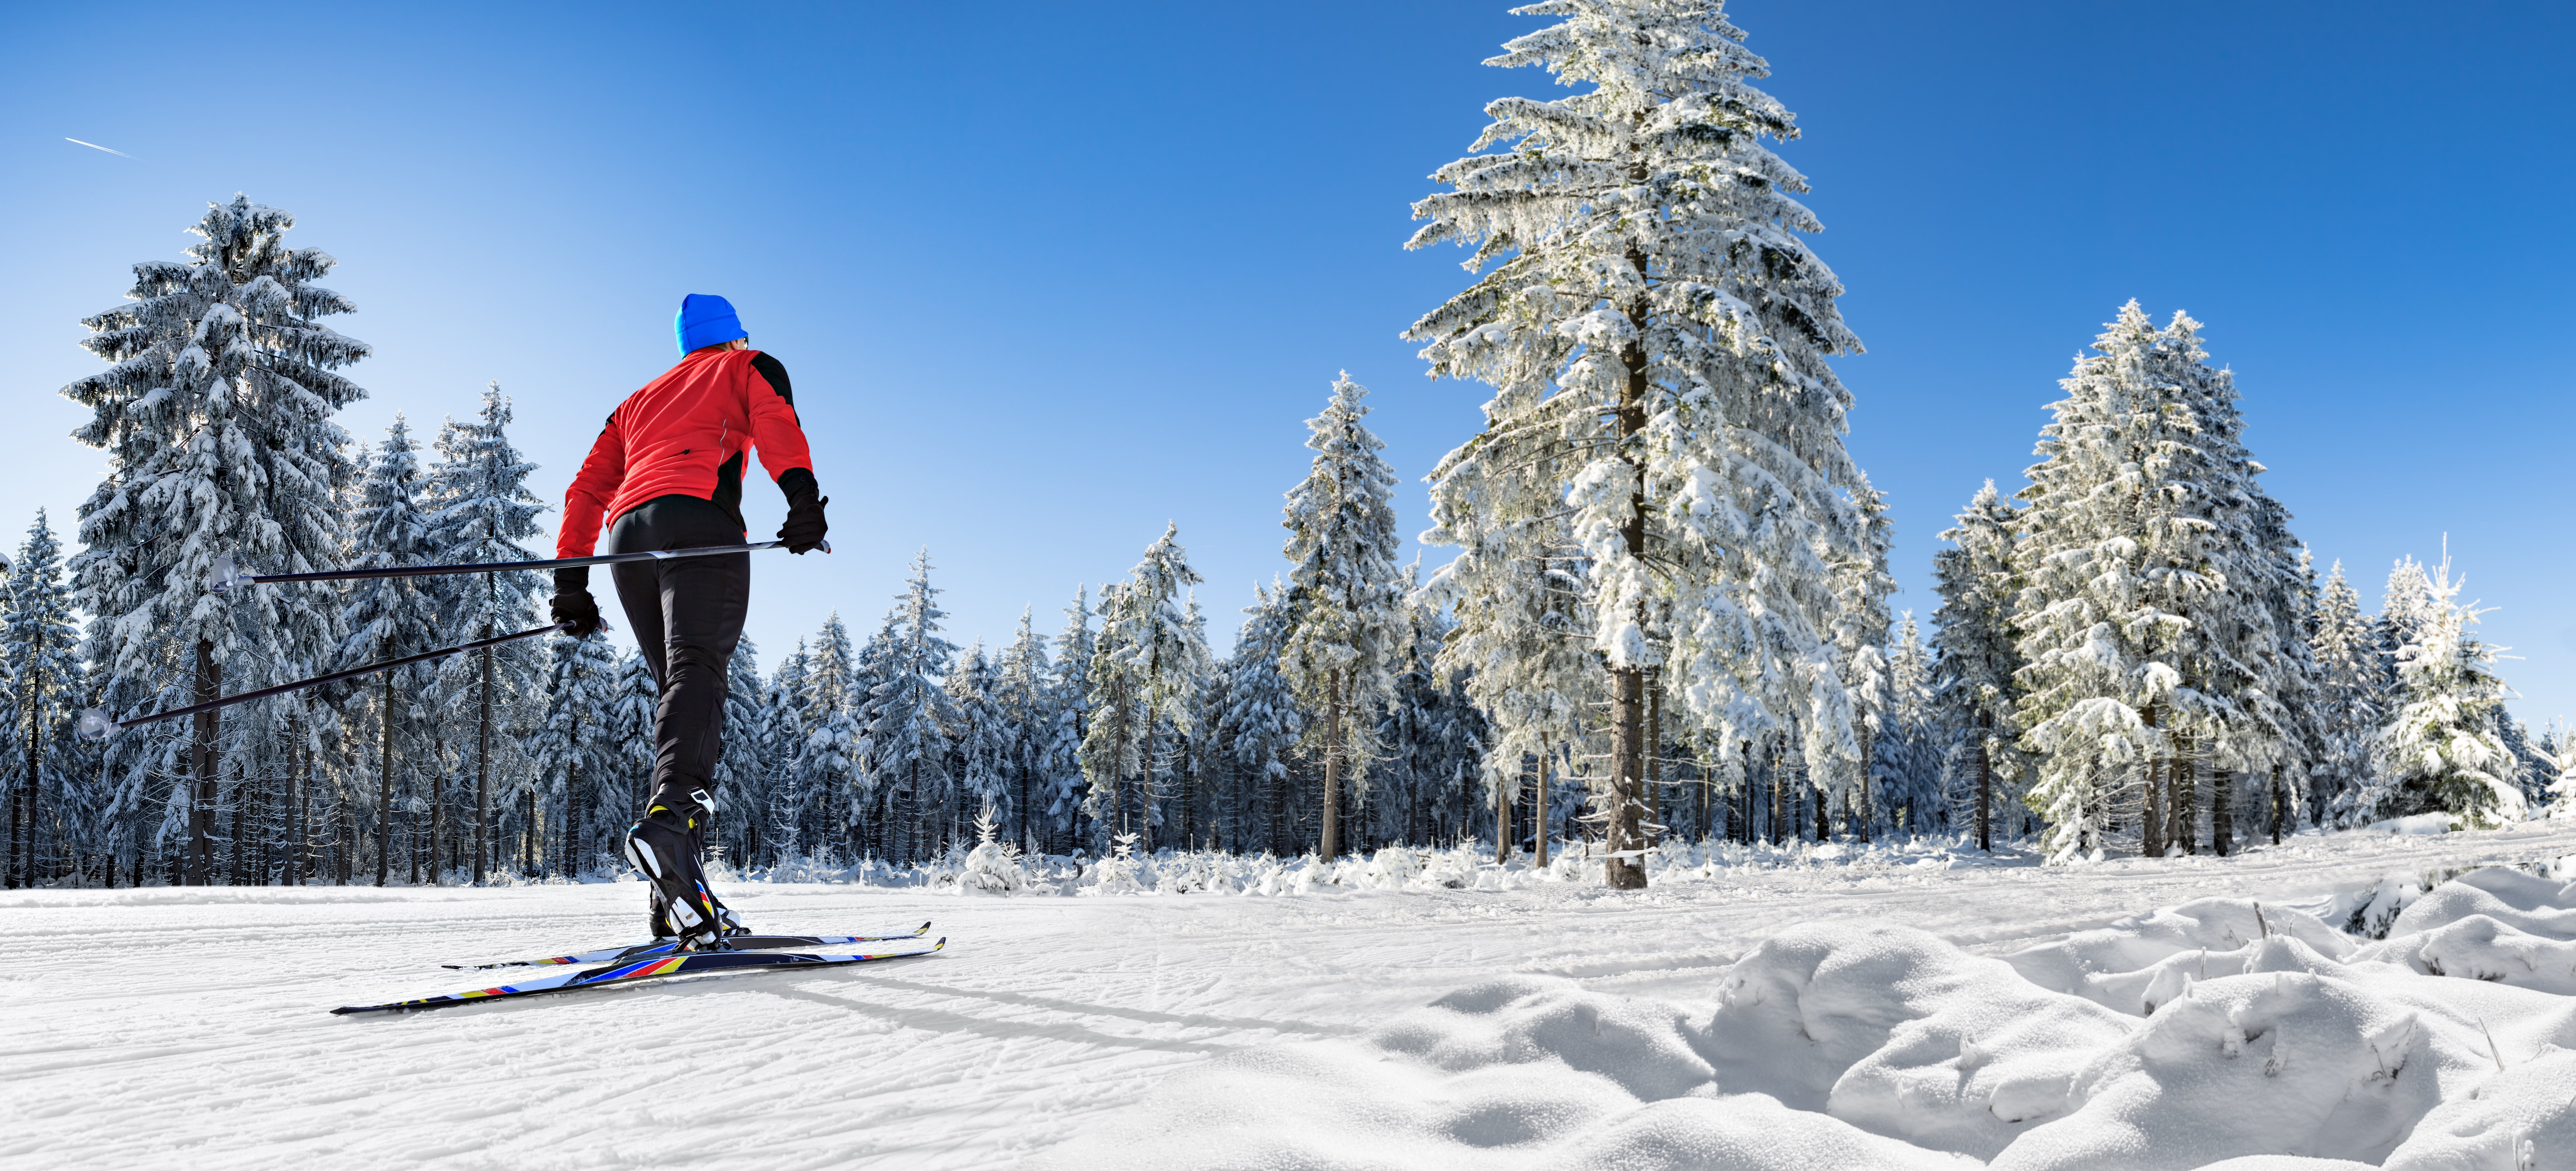 Preparing for Winter Sports: Winter Sports Safety